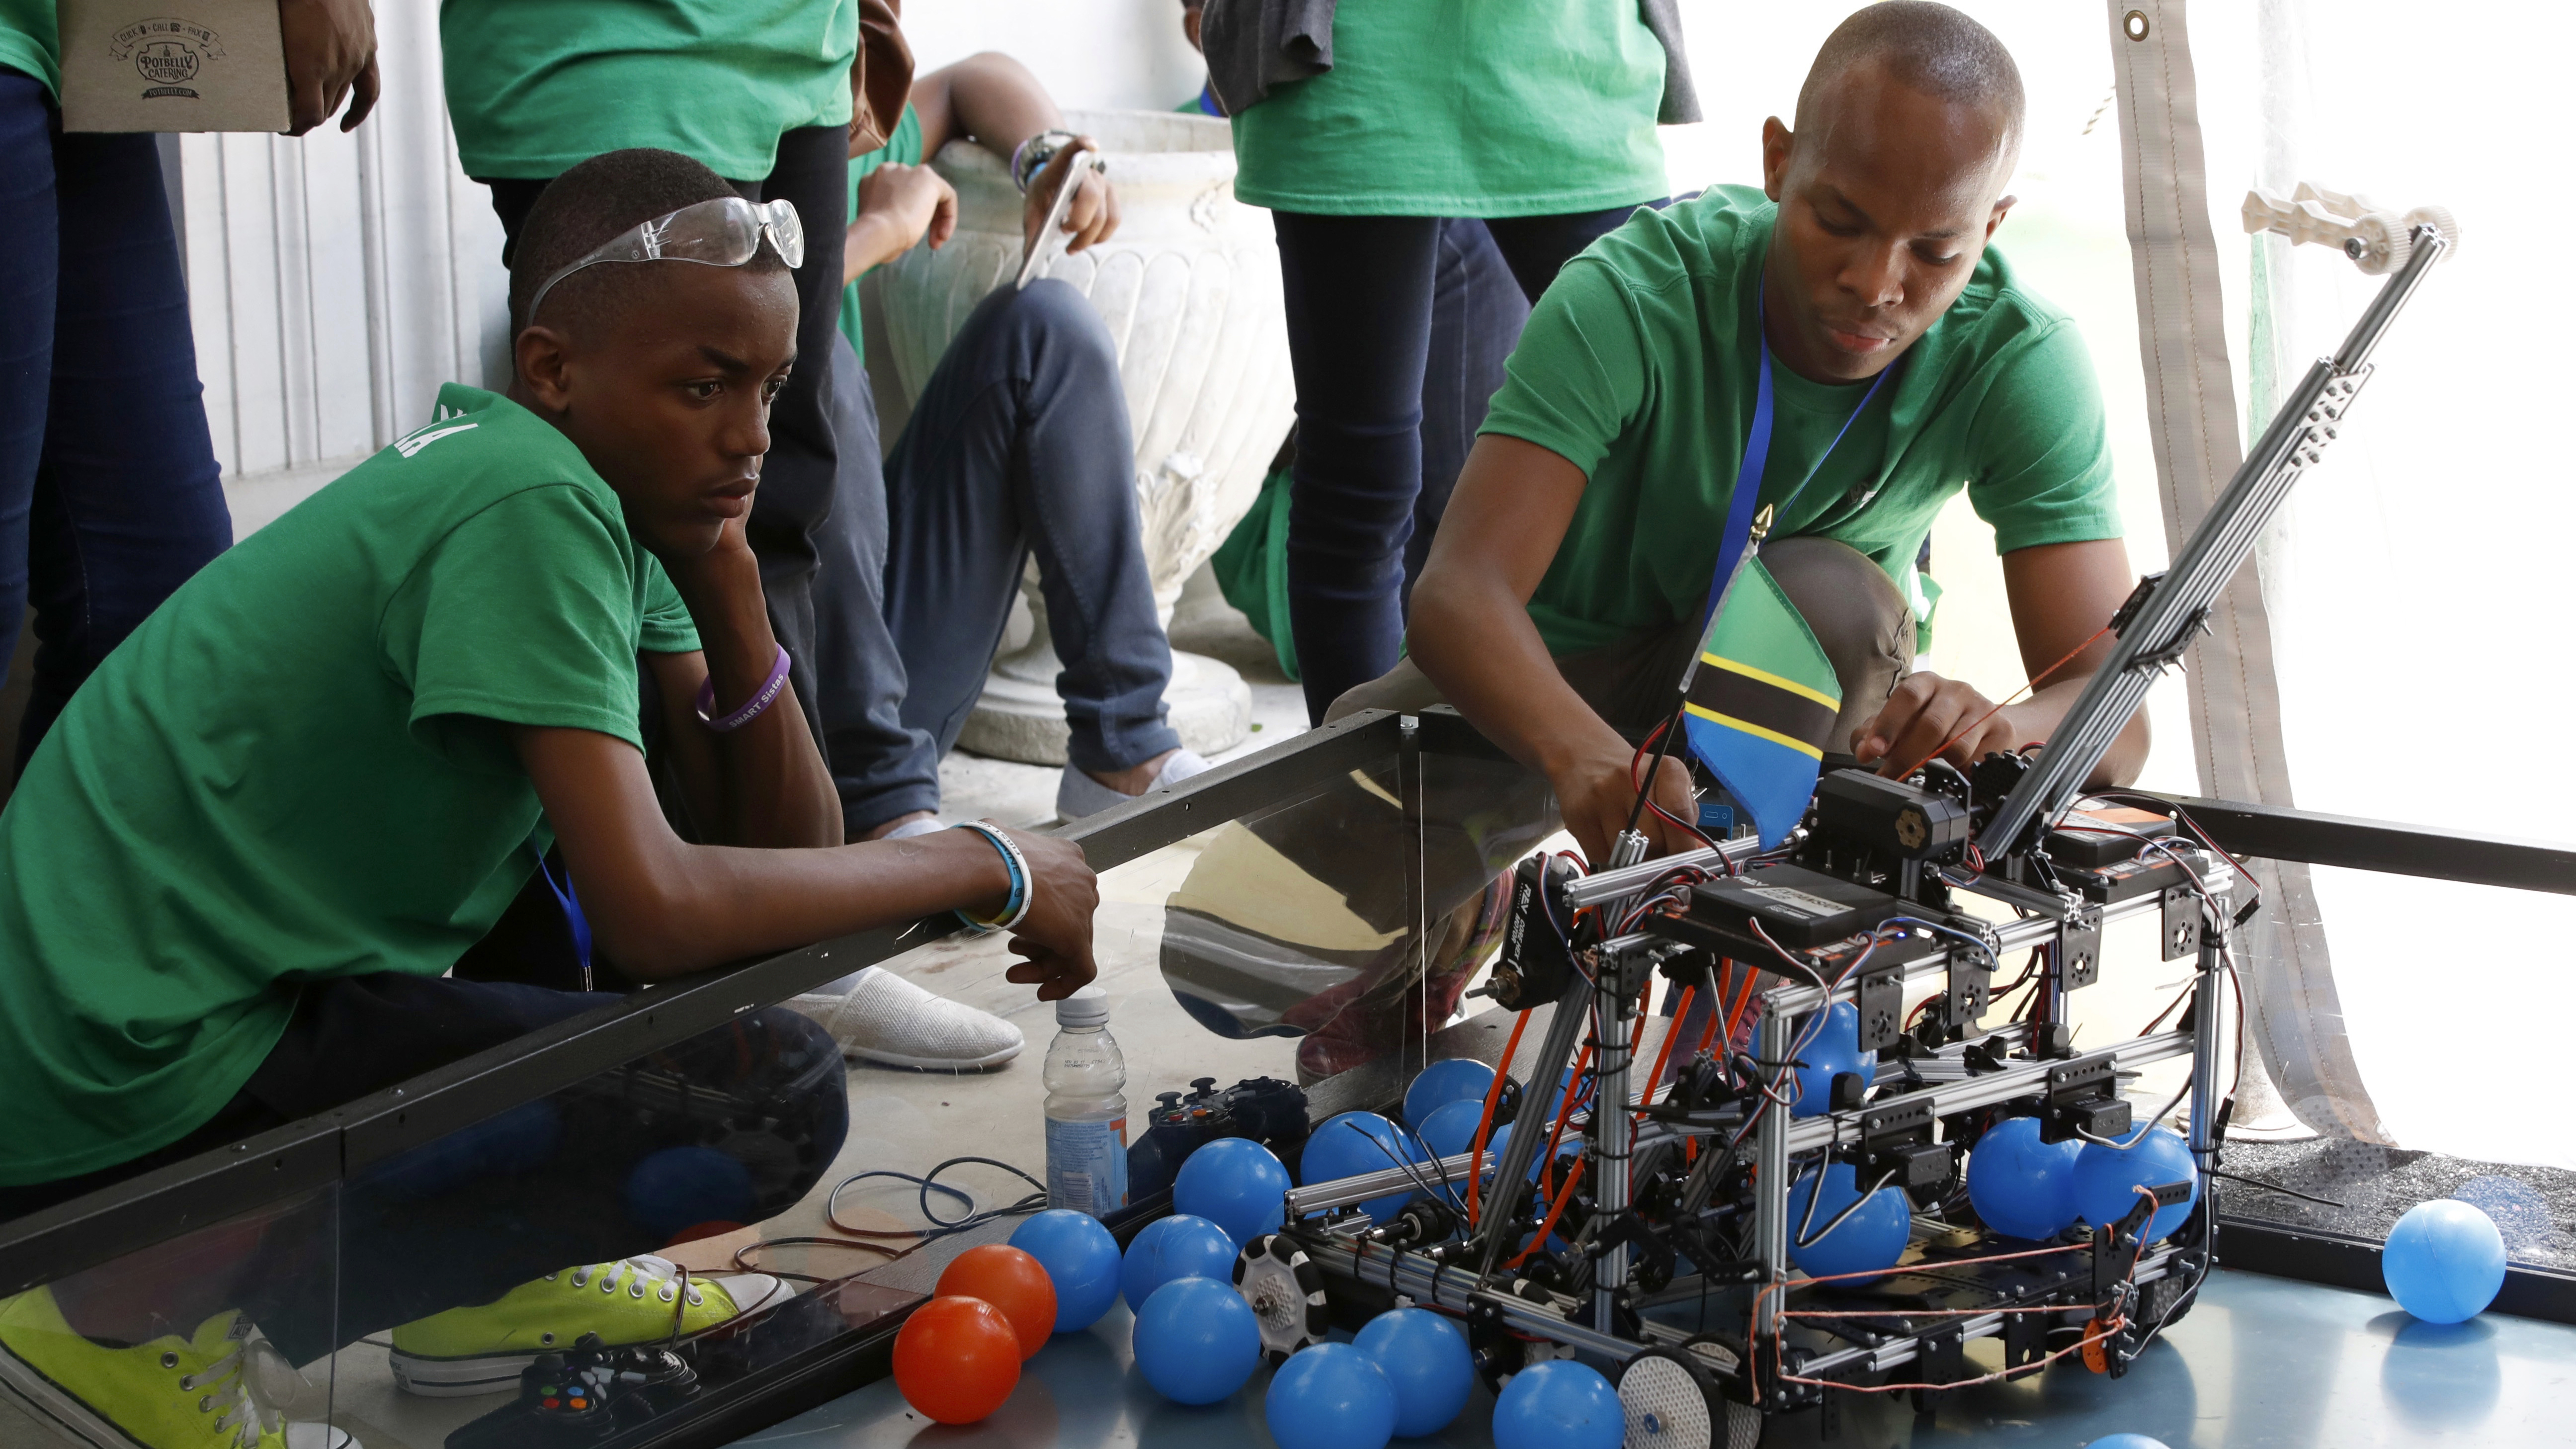 Robots may threaten manufacturing and other semi-skilled jobs in Africa, deepening income inequality